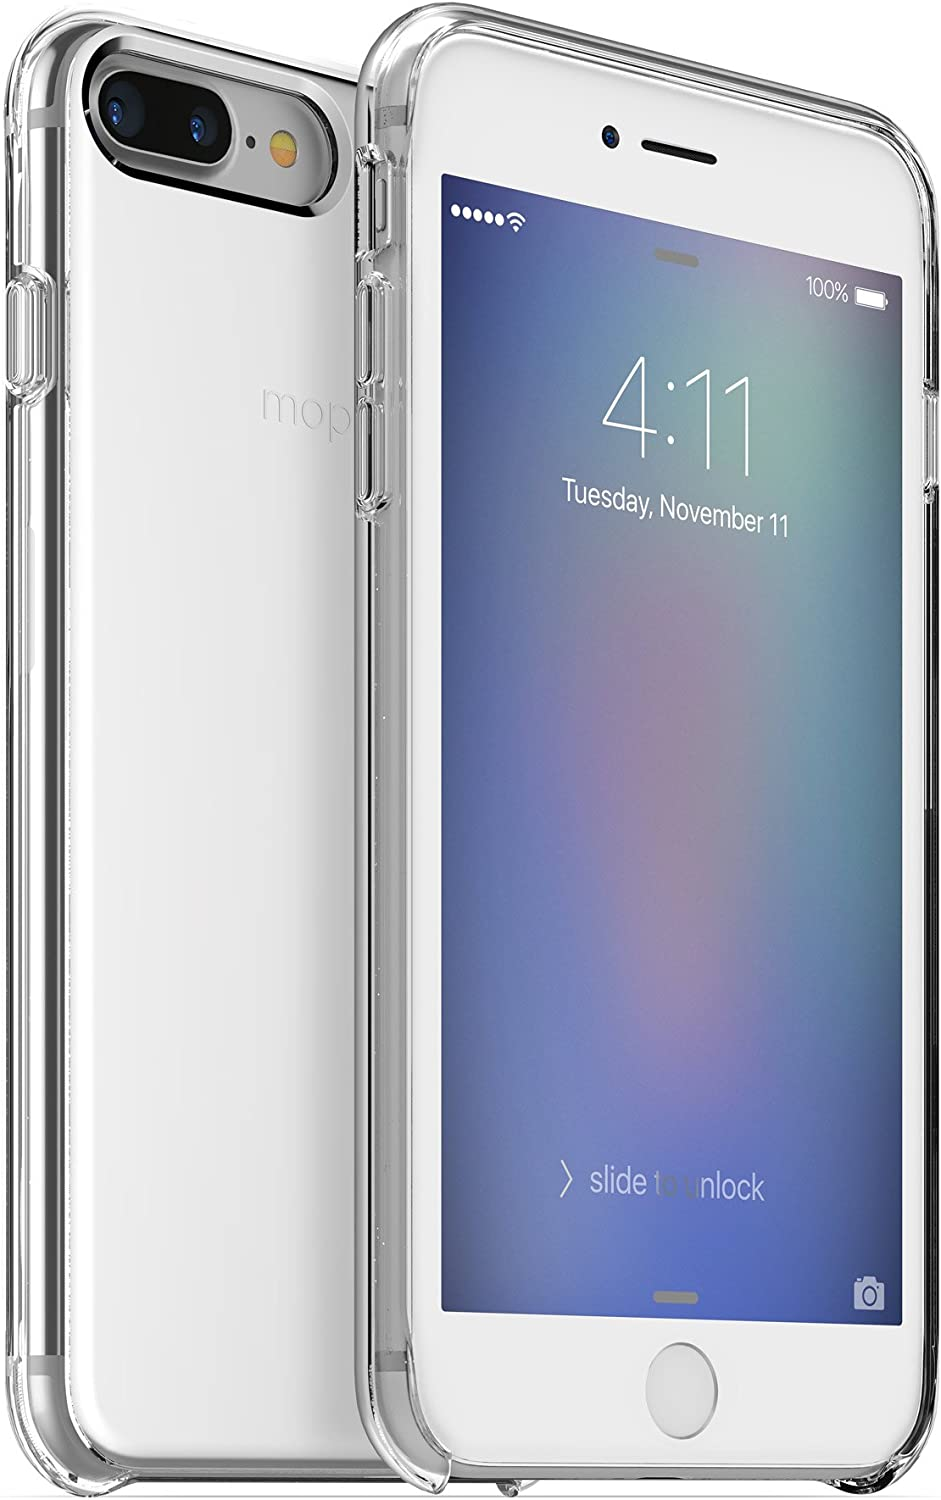 mophie Hold Force Gradient Base Case for Apple iPhone 8 Plus, iPhone 7 Plus - Silver